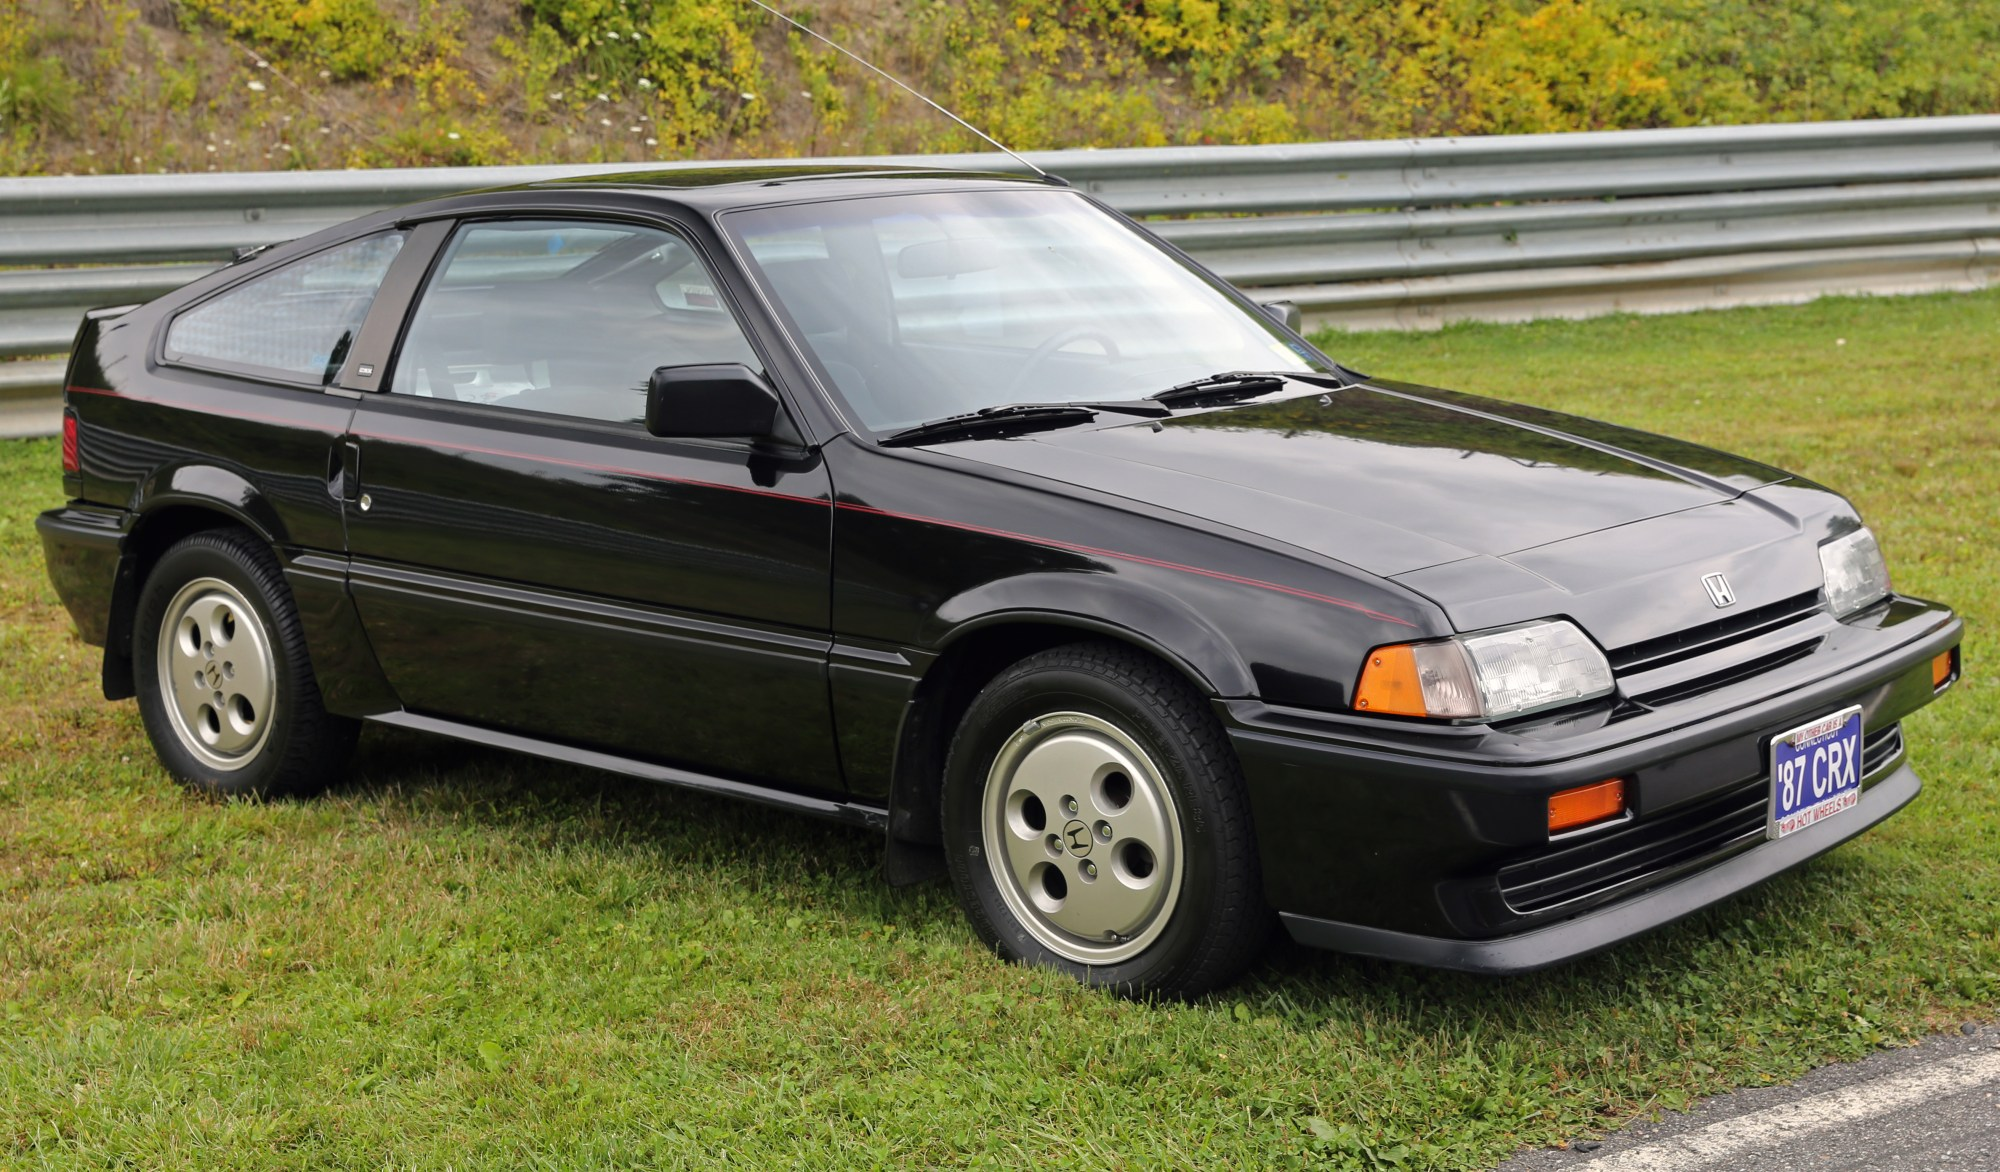 hight resolution of file 1987 honda crx si front right lime rock jpg